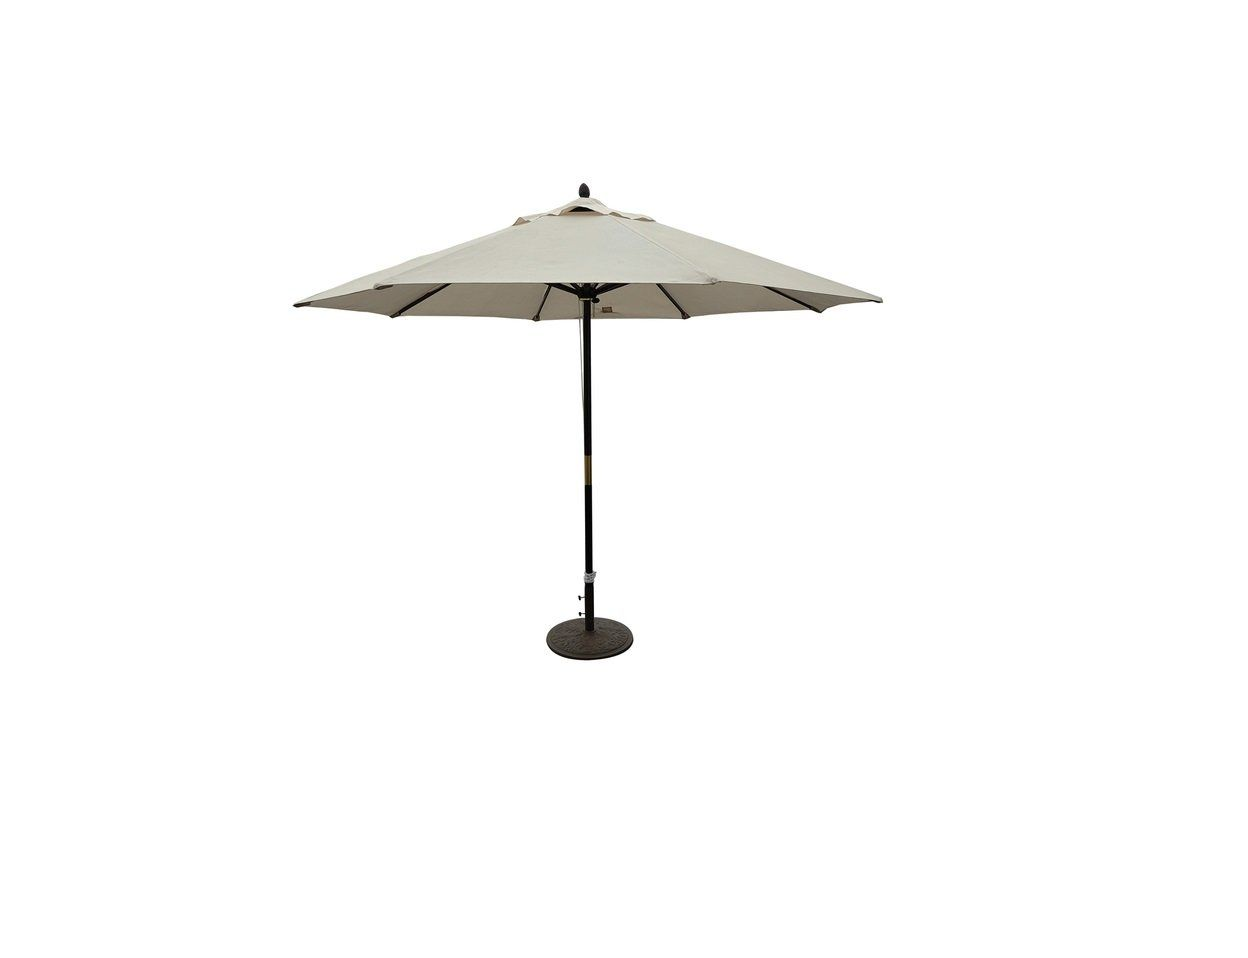 This 11 Foot Outdoor Patio Market Umbrella Will Keep You Cool And Protected From The Sun It Has A Solid Wooden Pole For Long Lasting Performance Thread Coupli